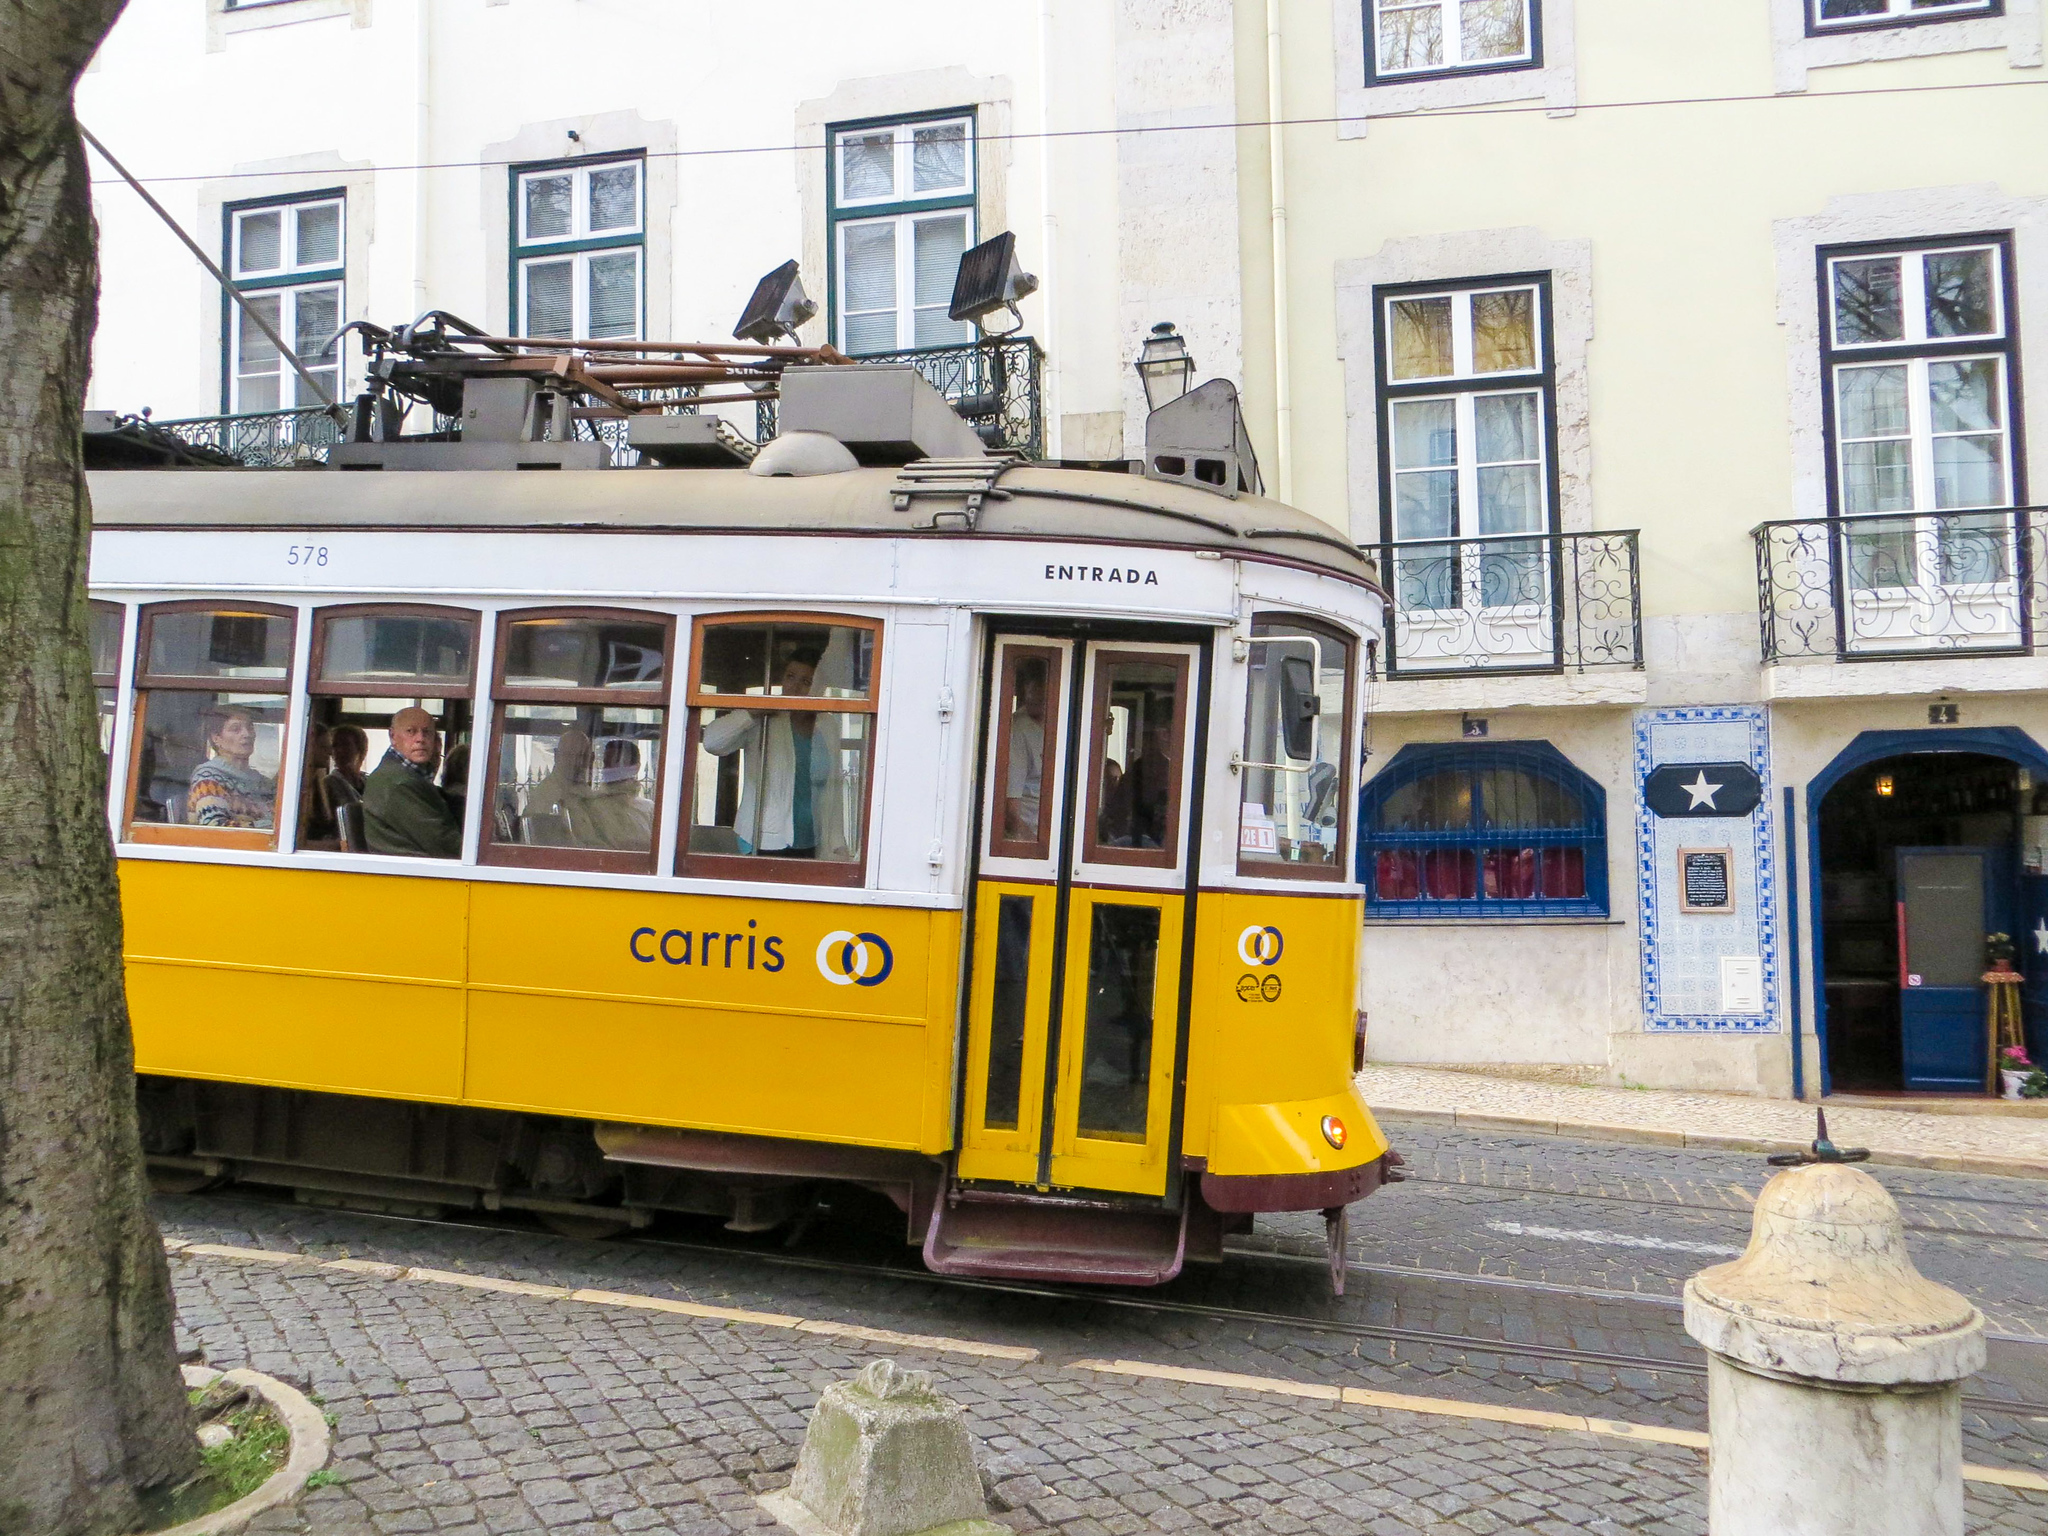 lisbon in two days: use the tram to navigate the city